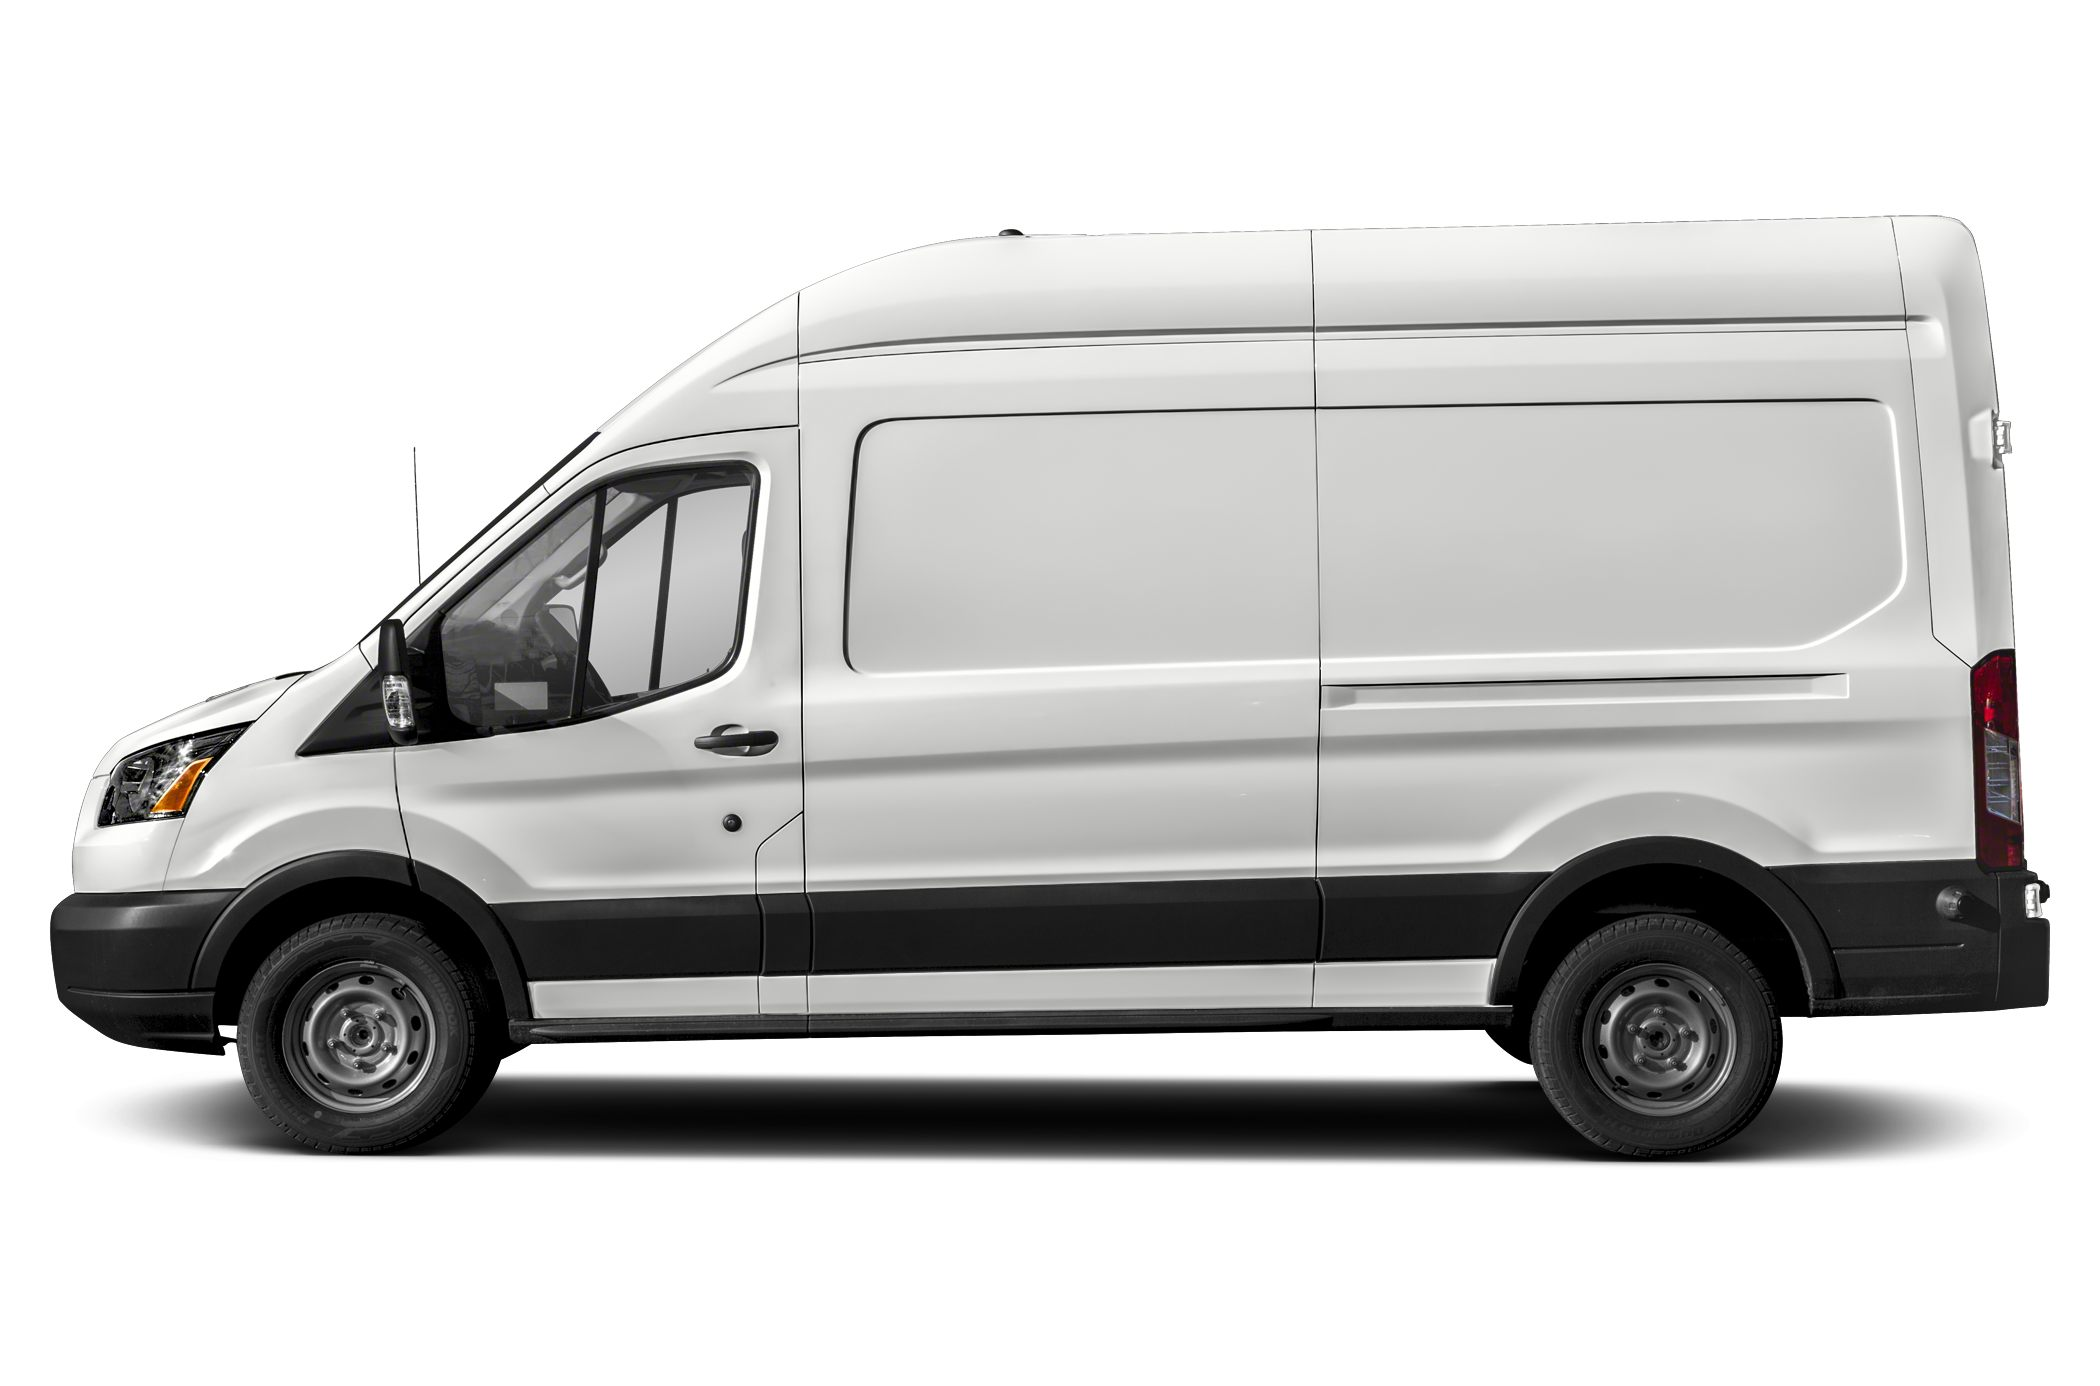 2018 Chevy Truck Colors >> See 2018 Ford Transit-350 Color Options - CarsDirect